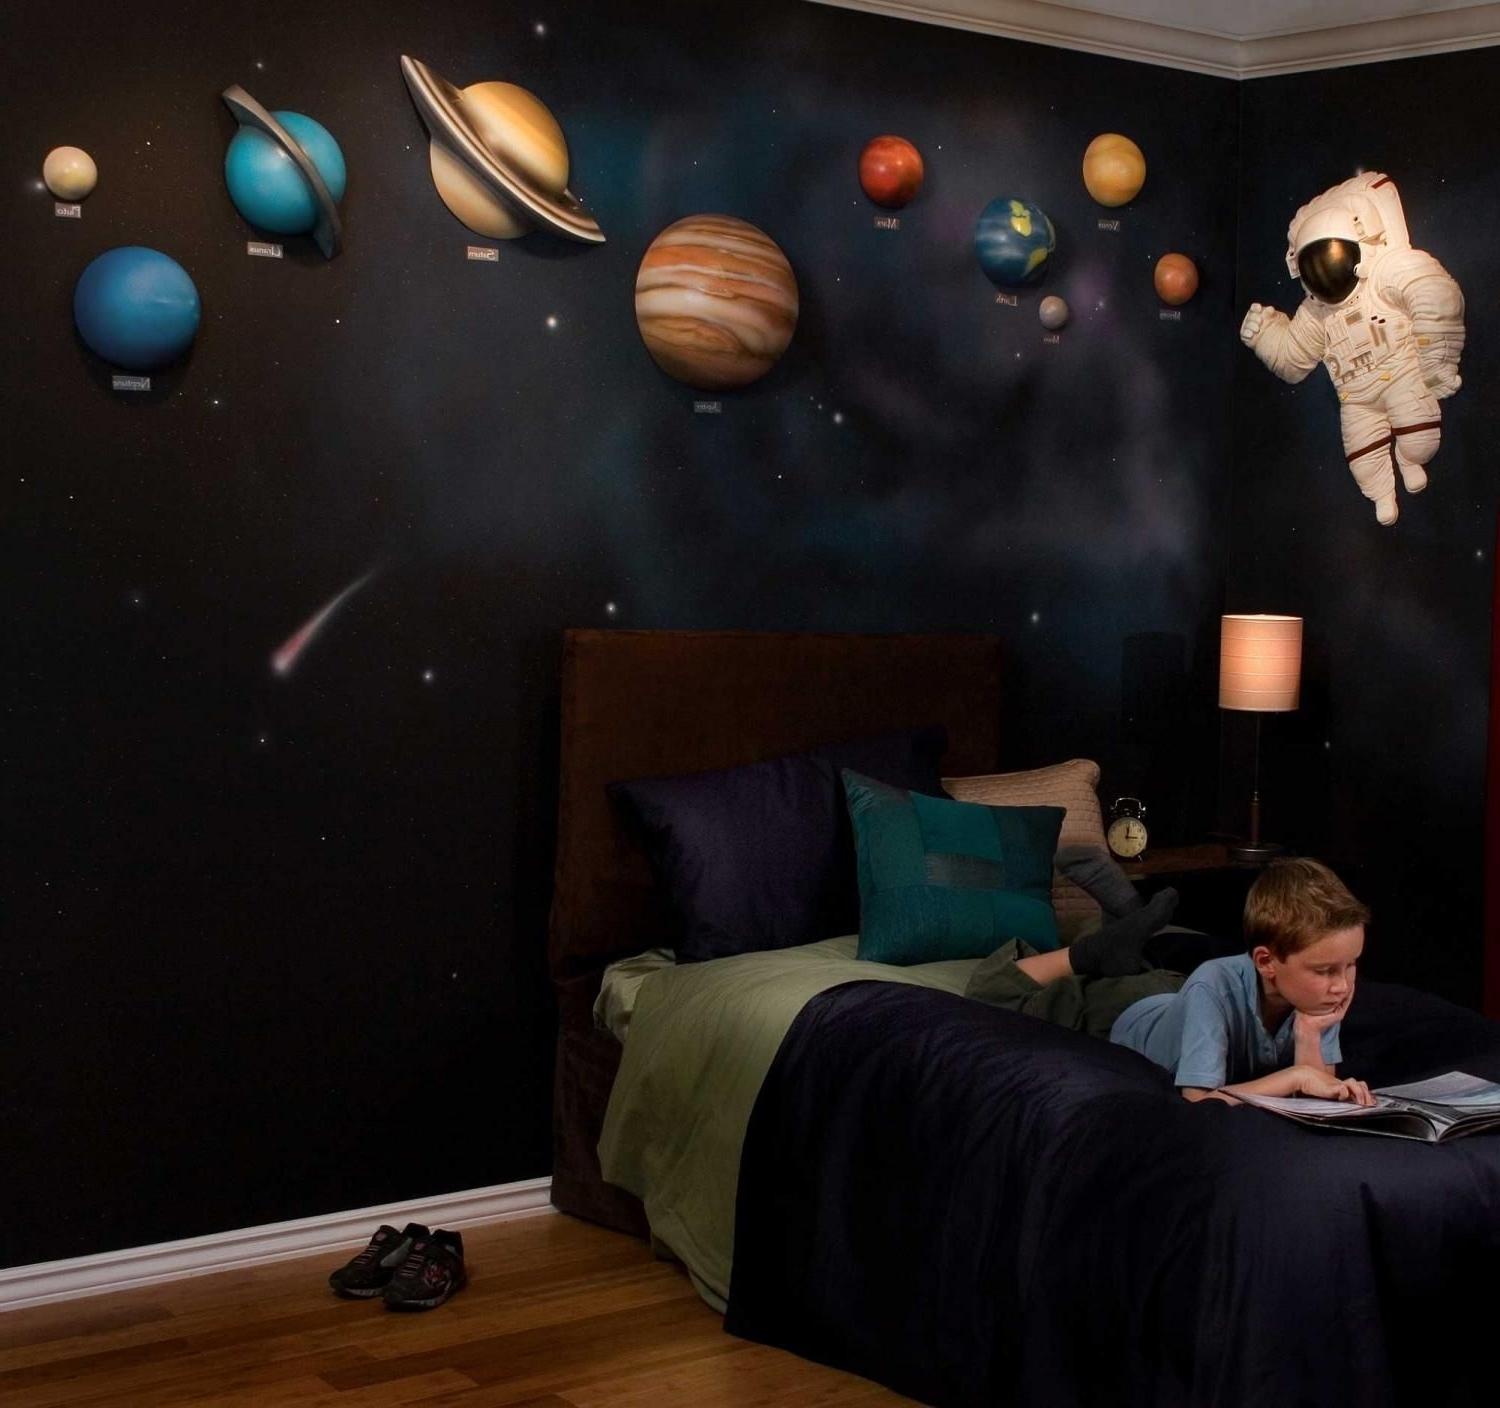 Solar System With Space Astronaut 3D Wall Art Decorbeetling Within Well Known Astronaut 3D Wall Art (View 10 of 15)